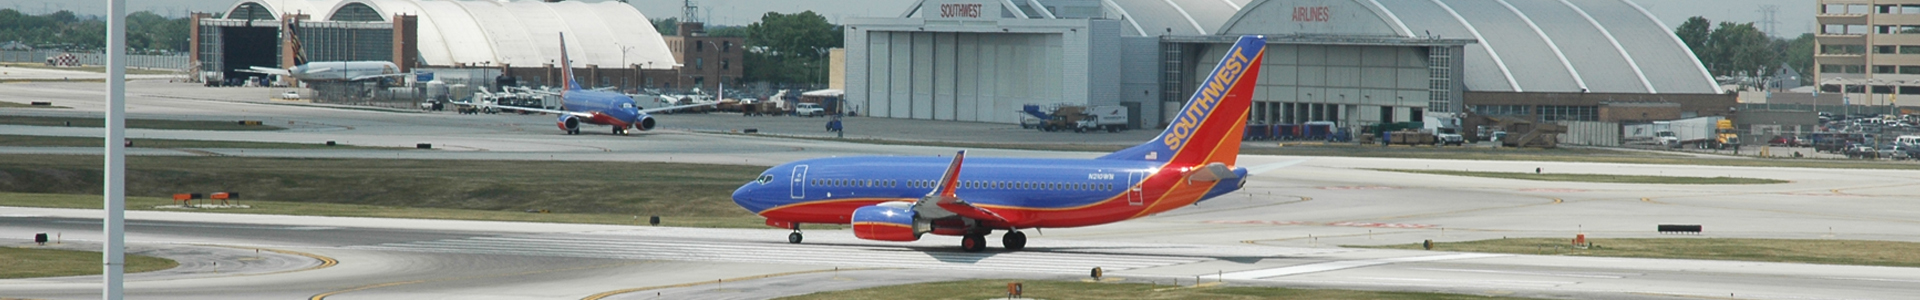 Midway Southwest Airline